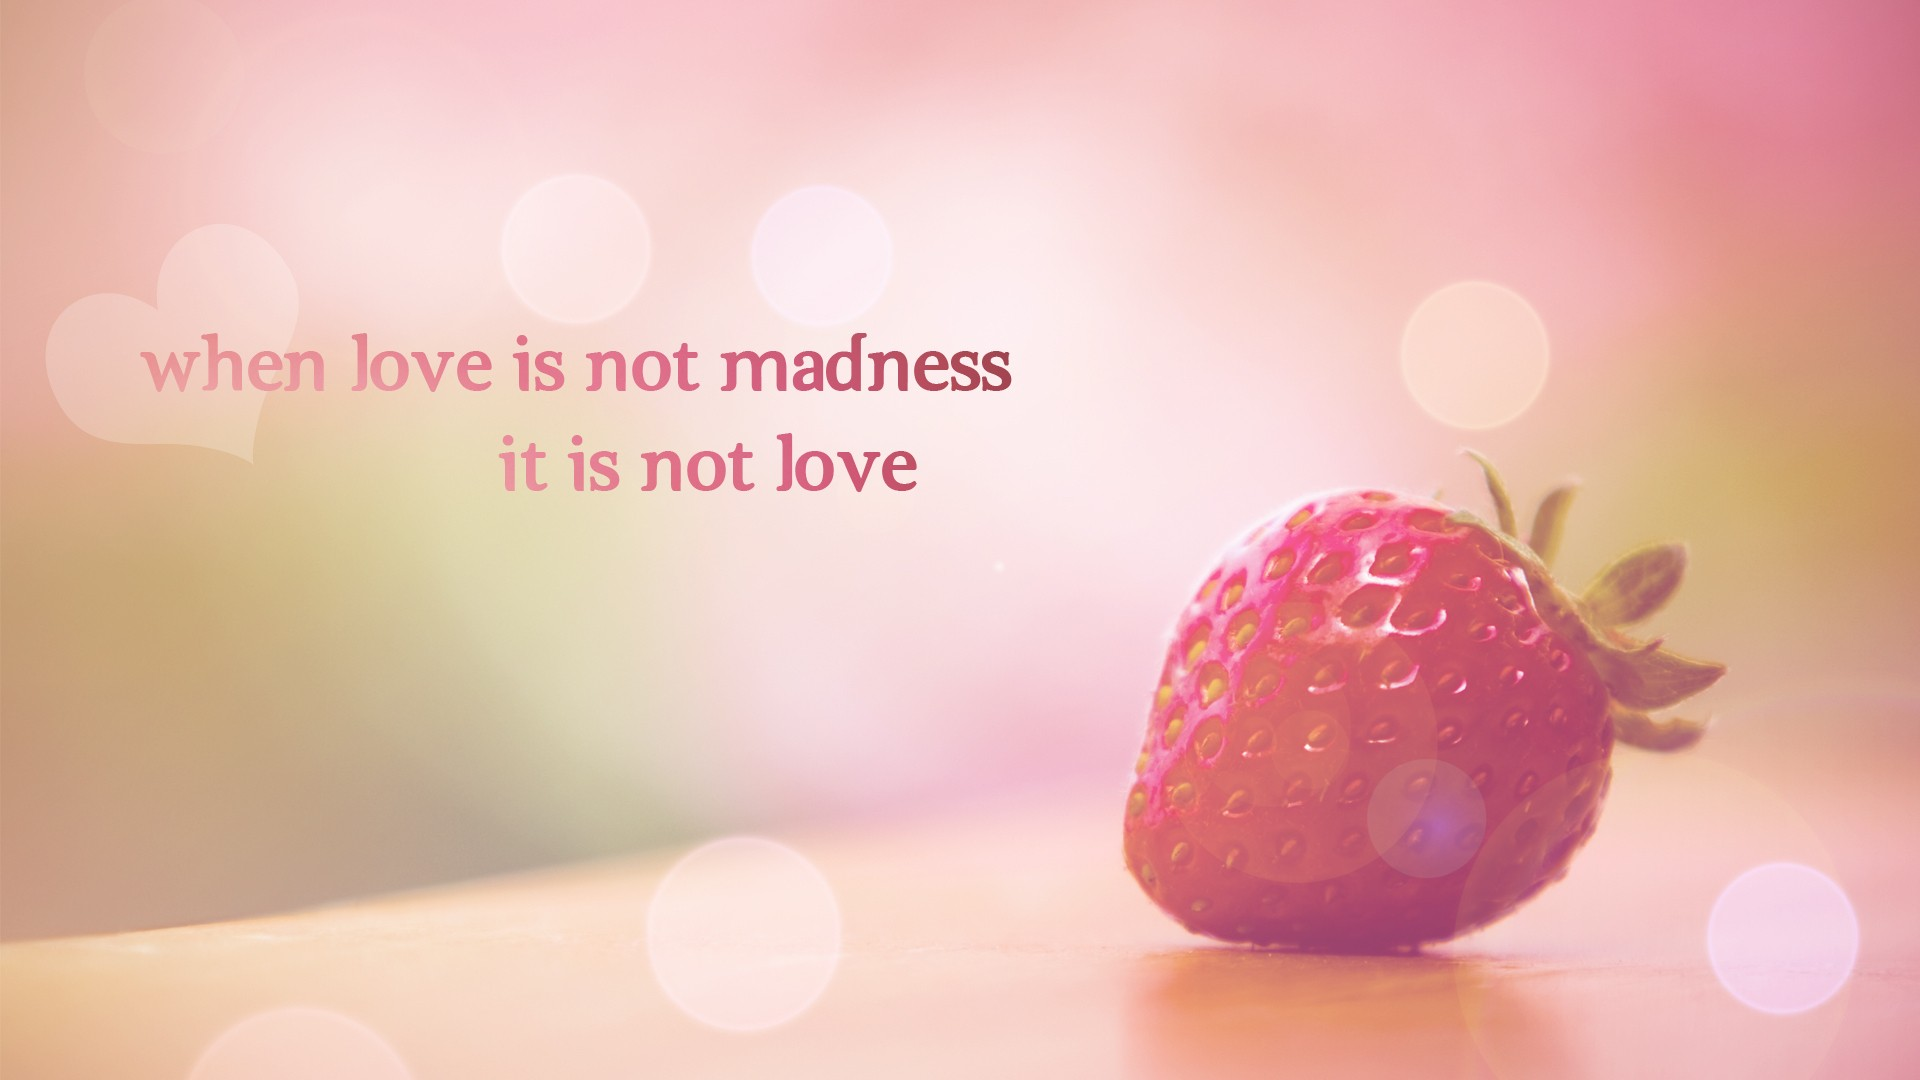 Sad Love Happiness for Cell Ph Wallpaper Of Quotes On Love Wallpapers 1920x1080